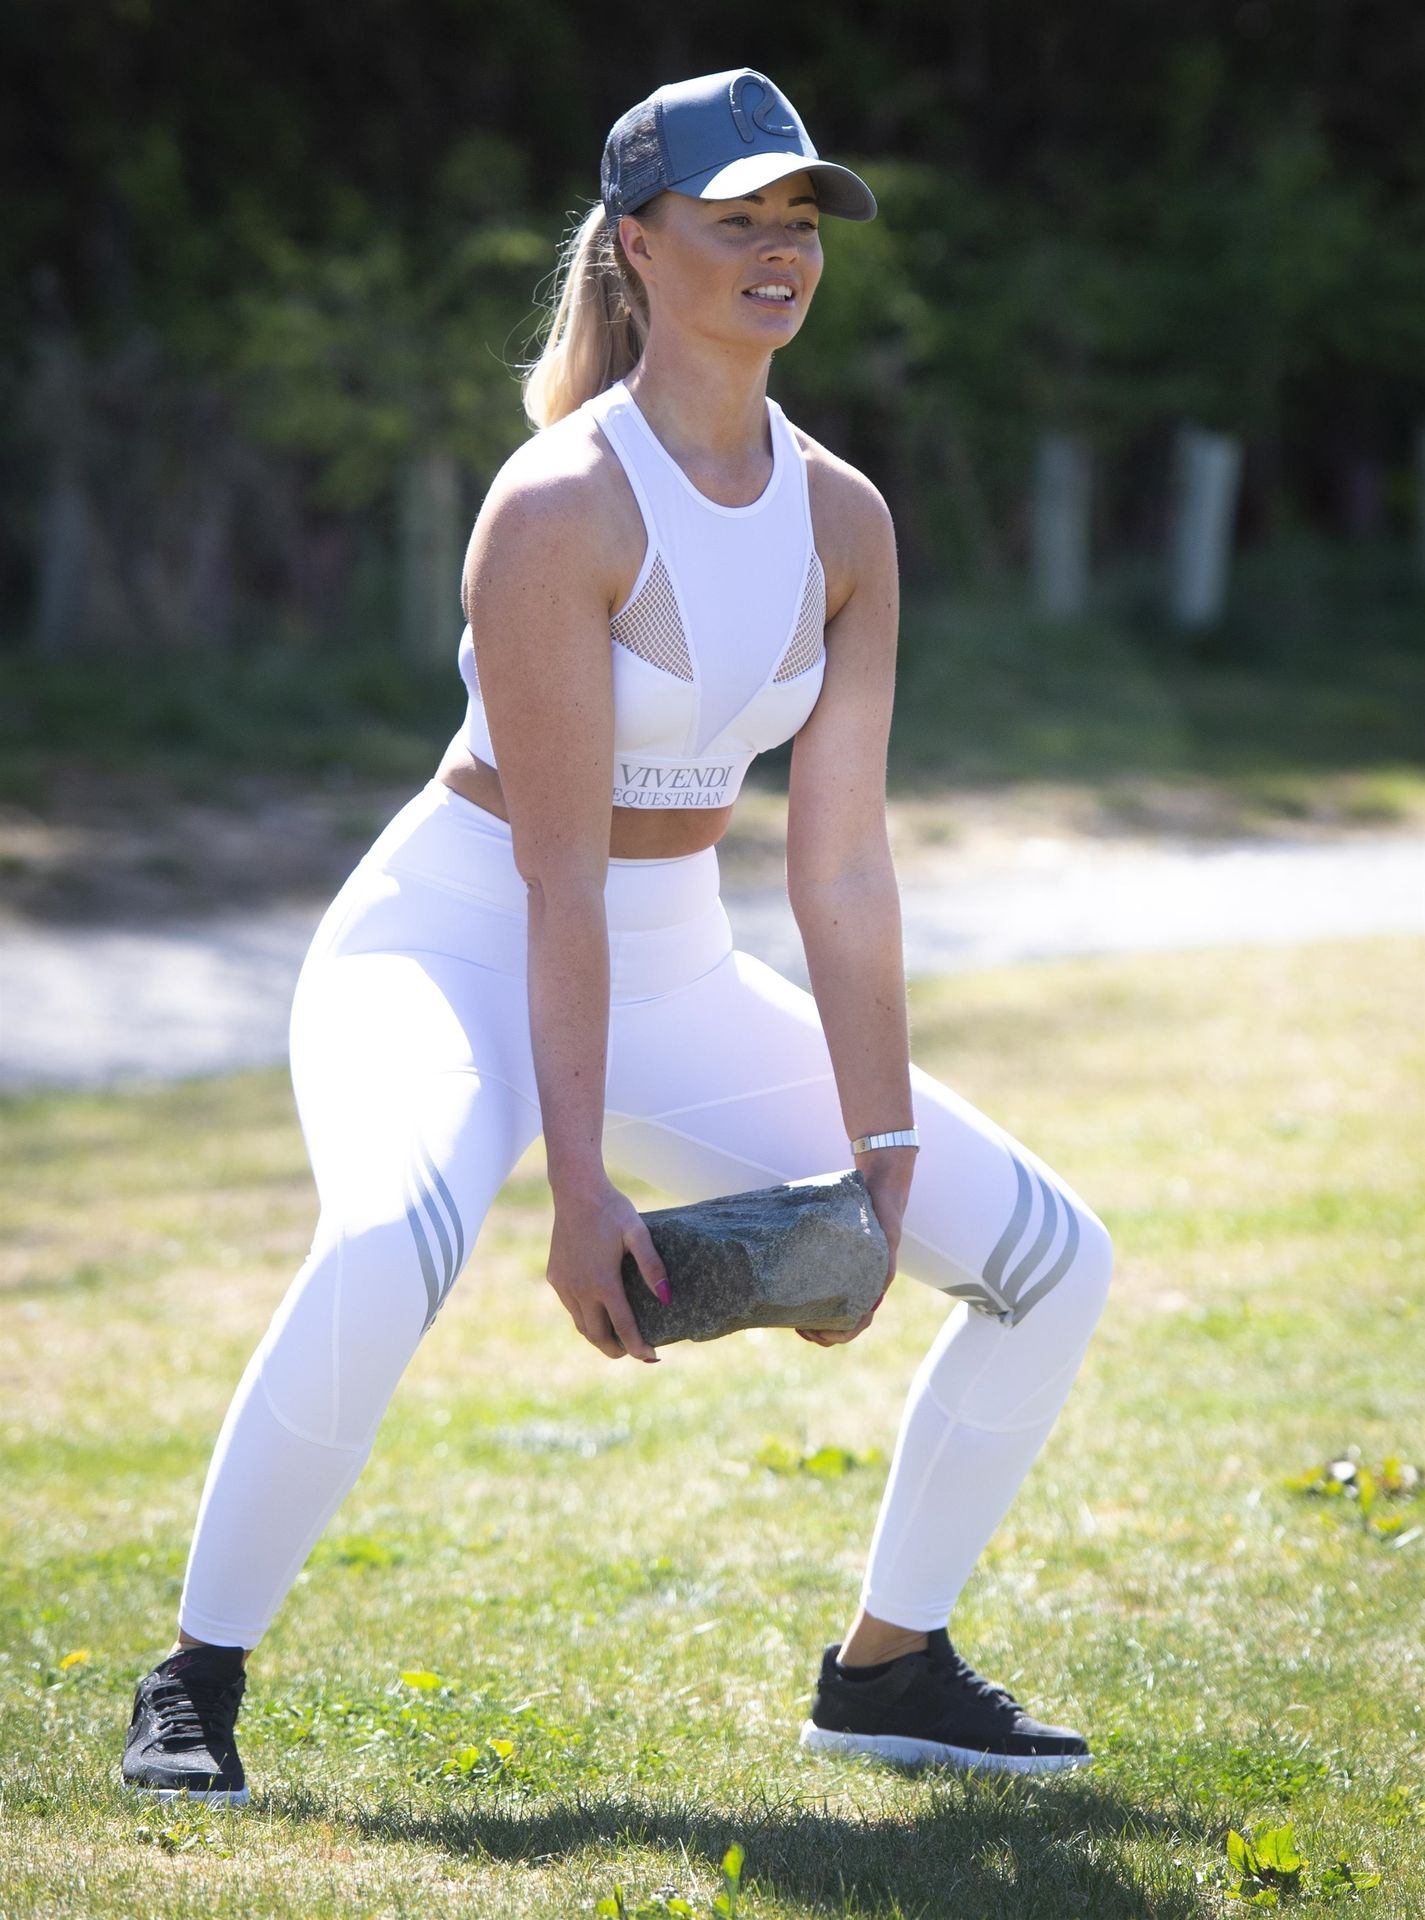 Jade Affleck is Doing Her Daily Exercise in a White Gym Wear, North Yorkshire